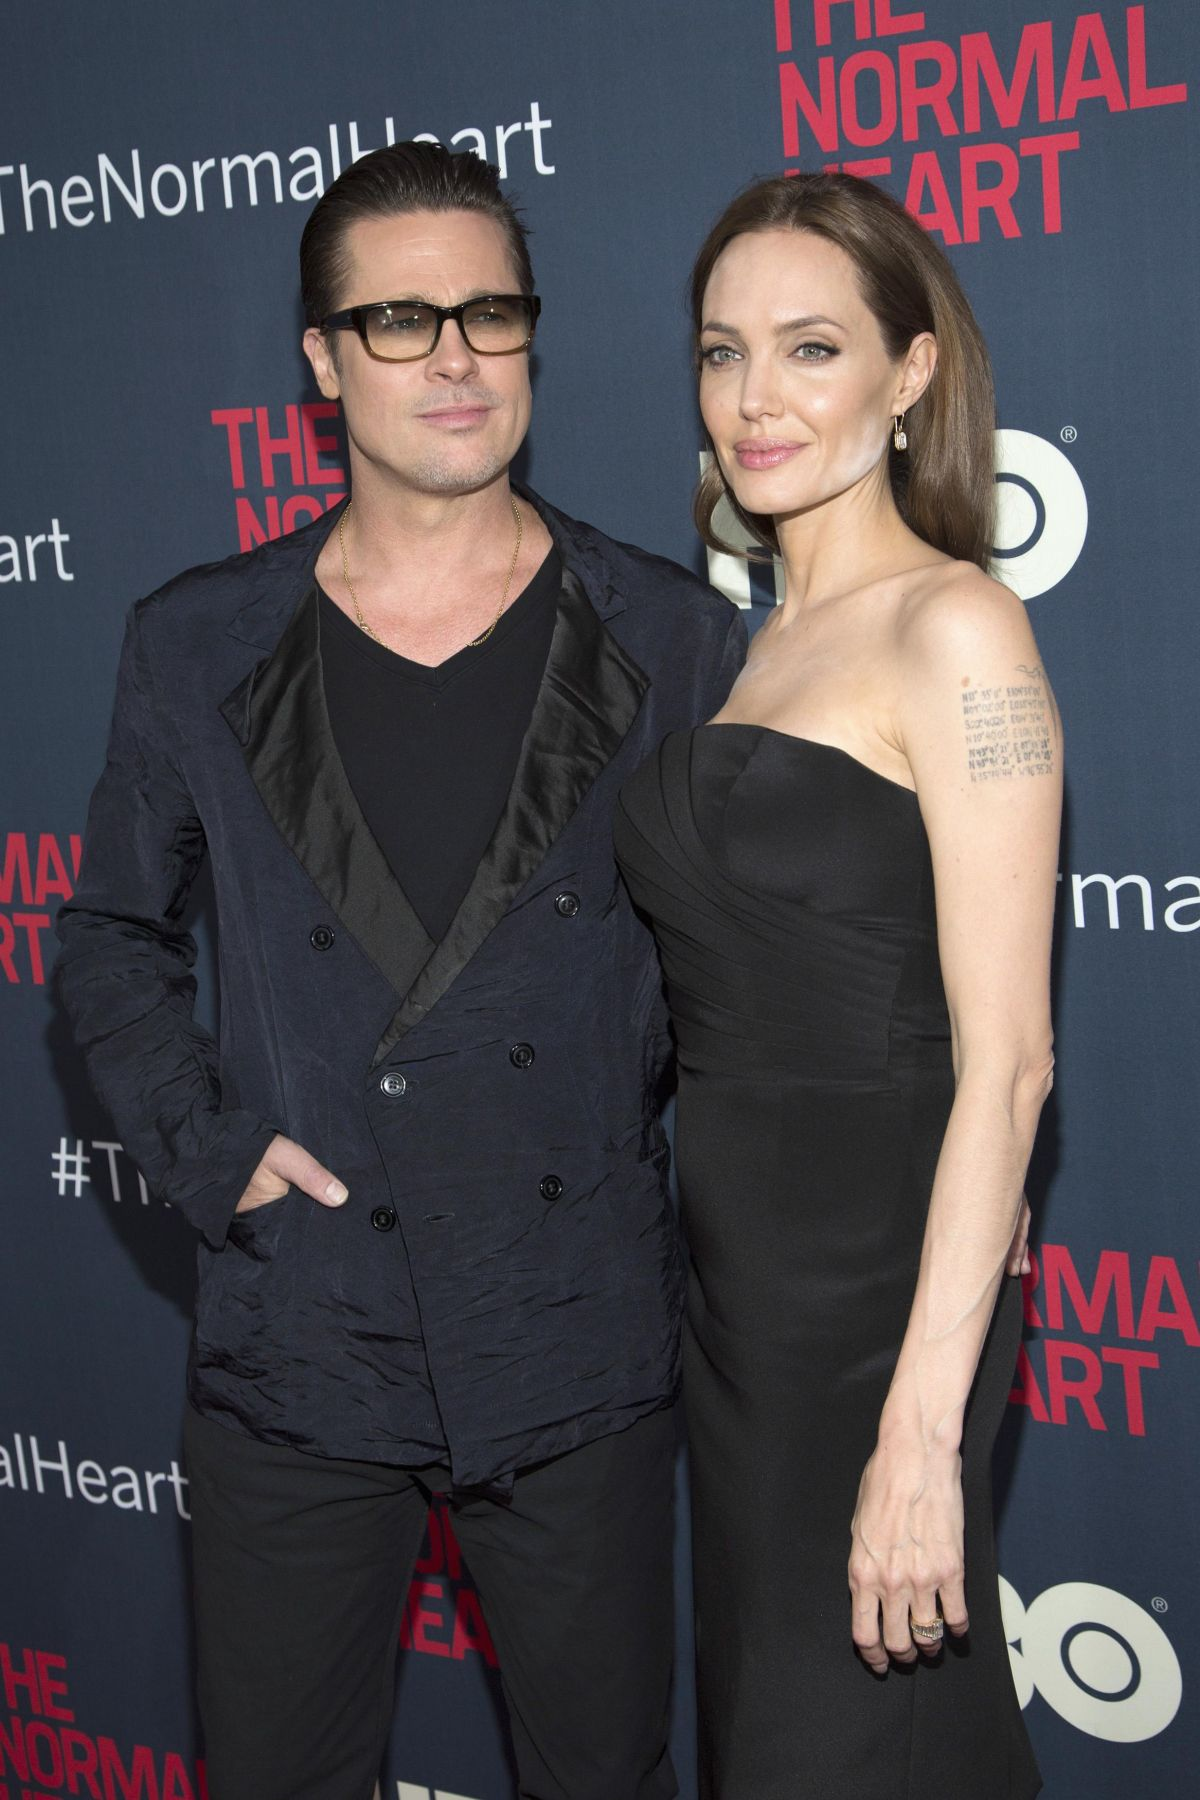 ANGELINA JOLIE nad Brad Pitt at The Normal Heart Premiere in New York